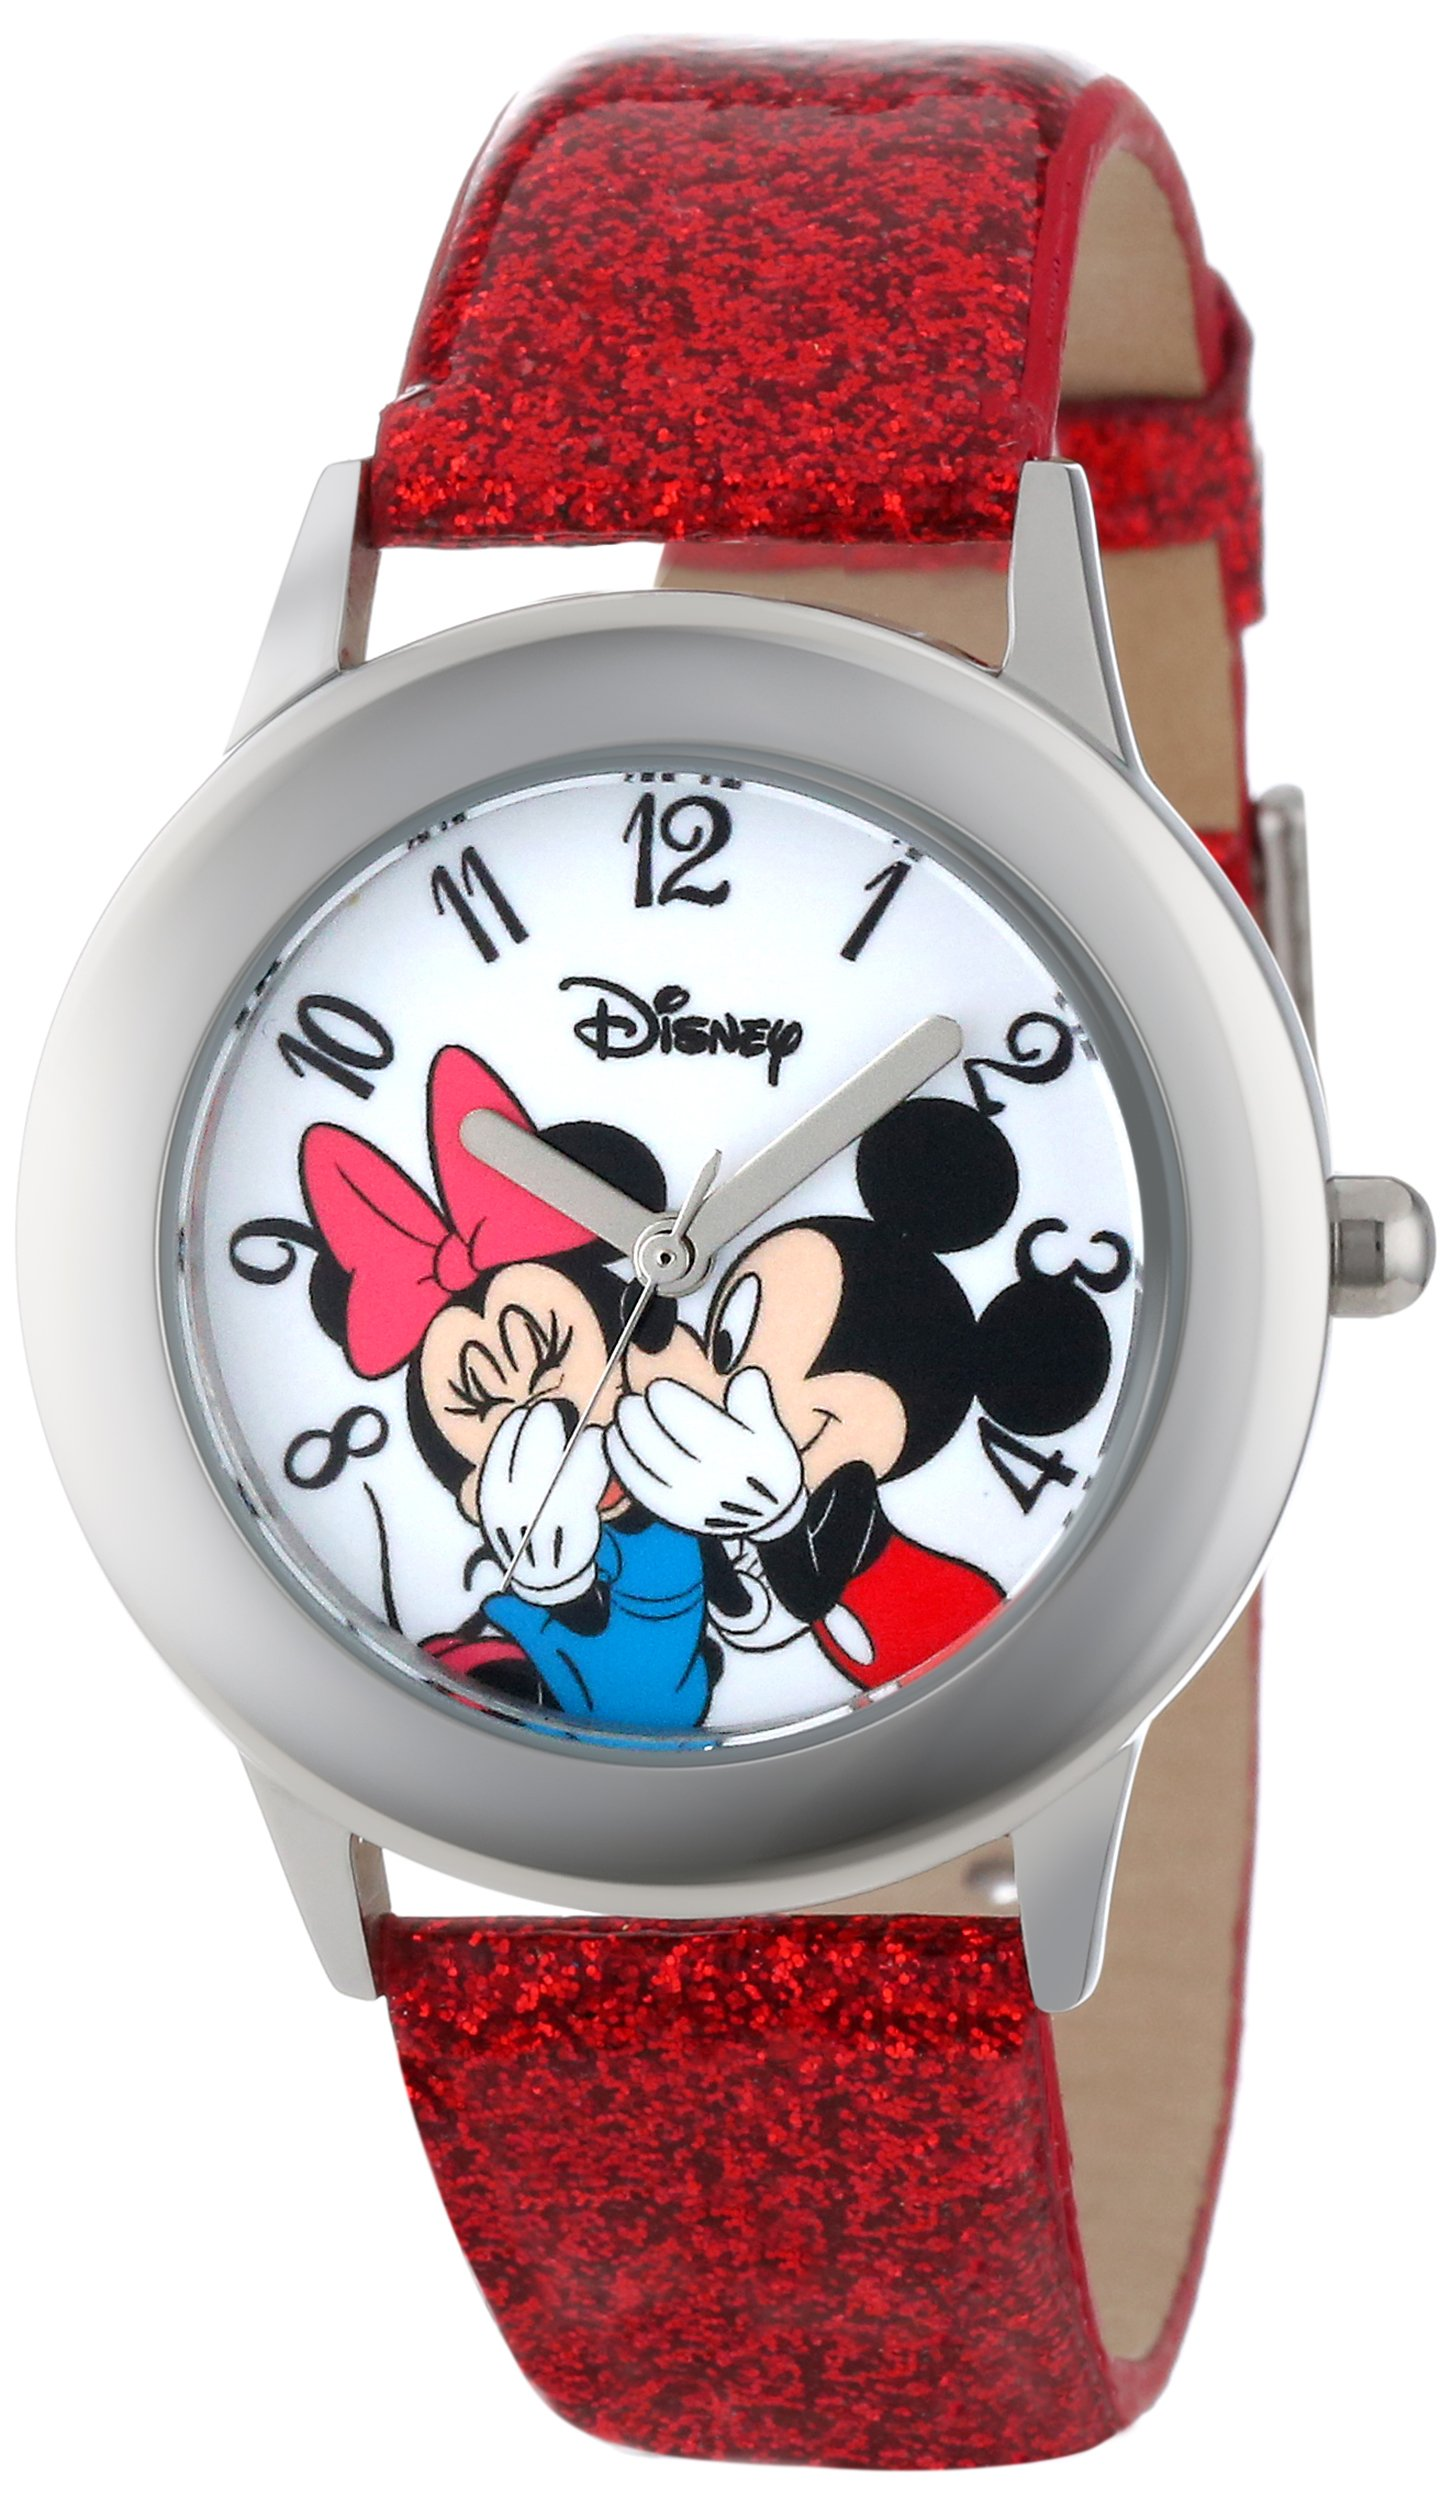 Disney Kids' W000853 Tween Mickey and Minnie Mouse Stainless Steel Watch with Red Glitter Band by Disney